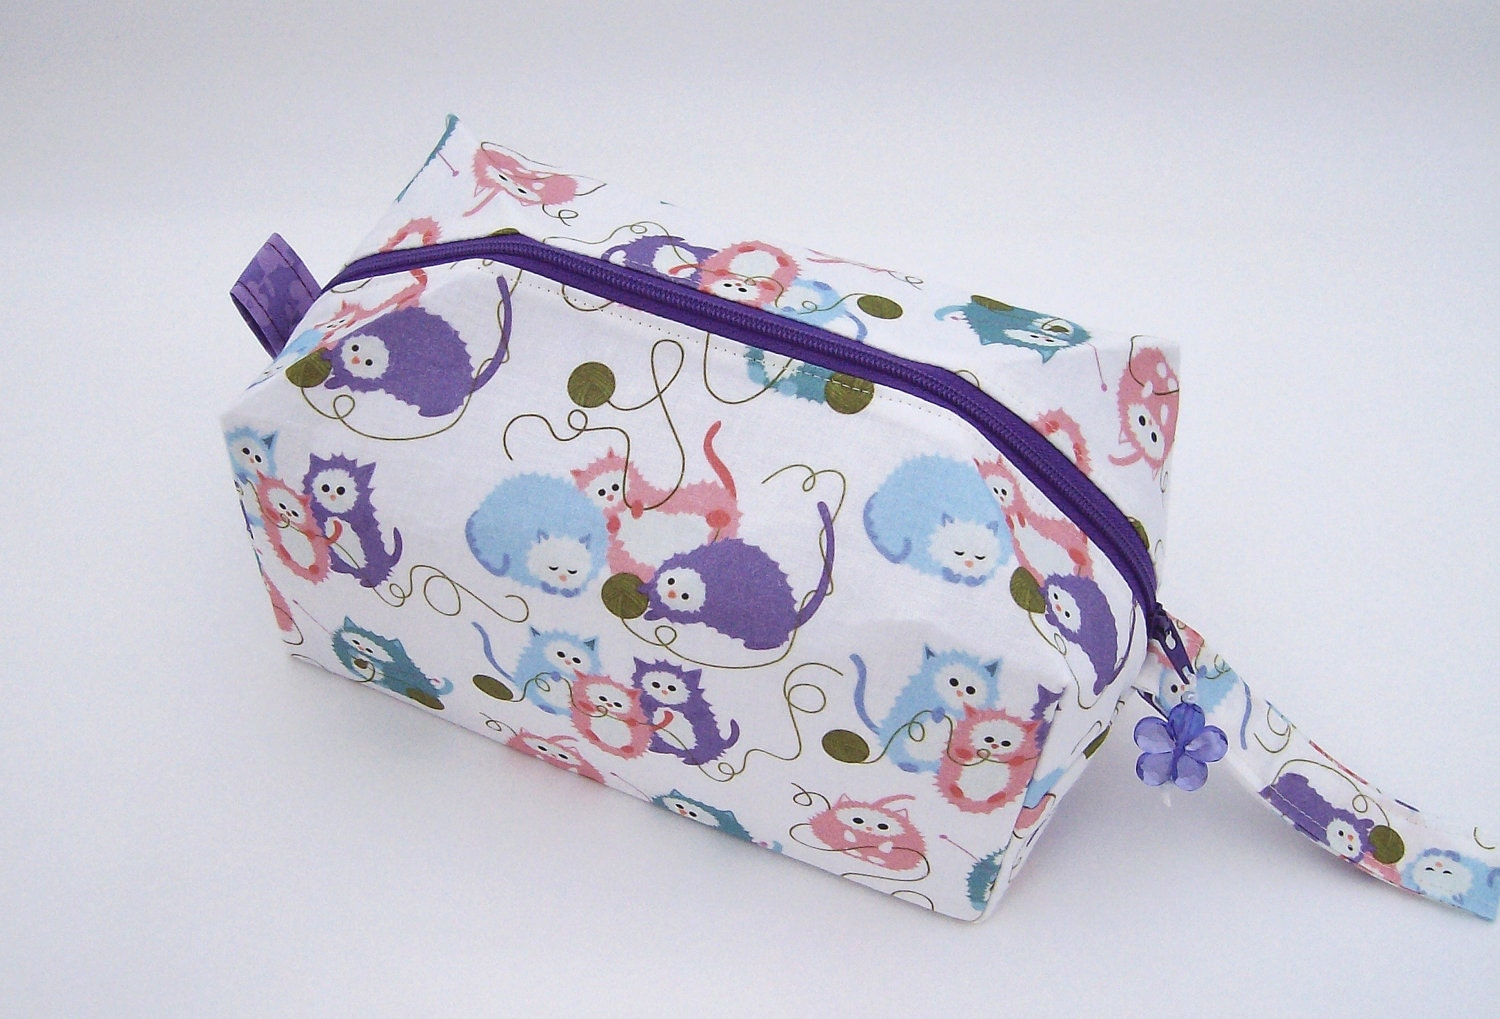 Zippered Knitting Bag : Small zippered project bag knitting kittens